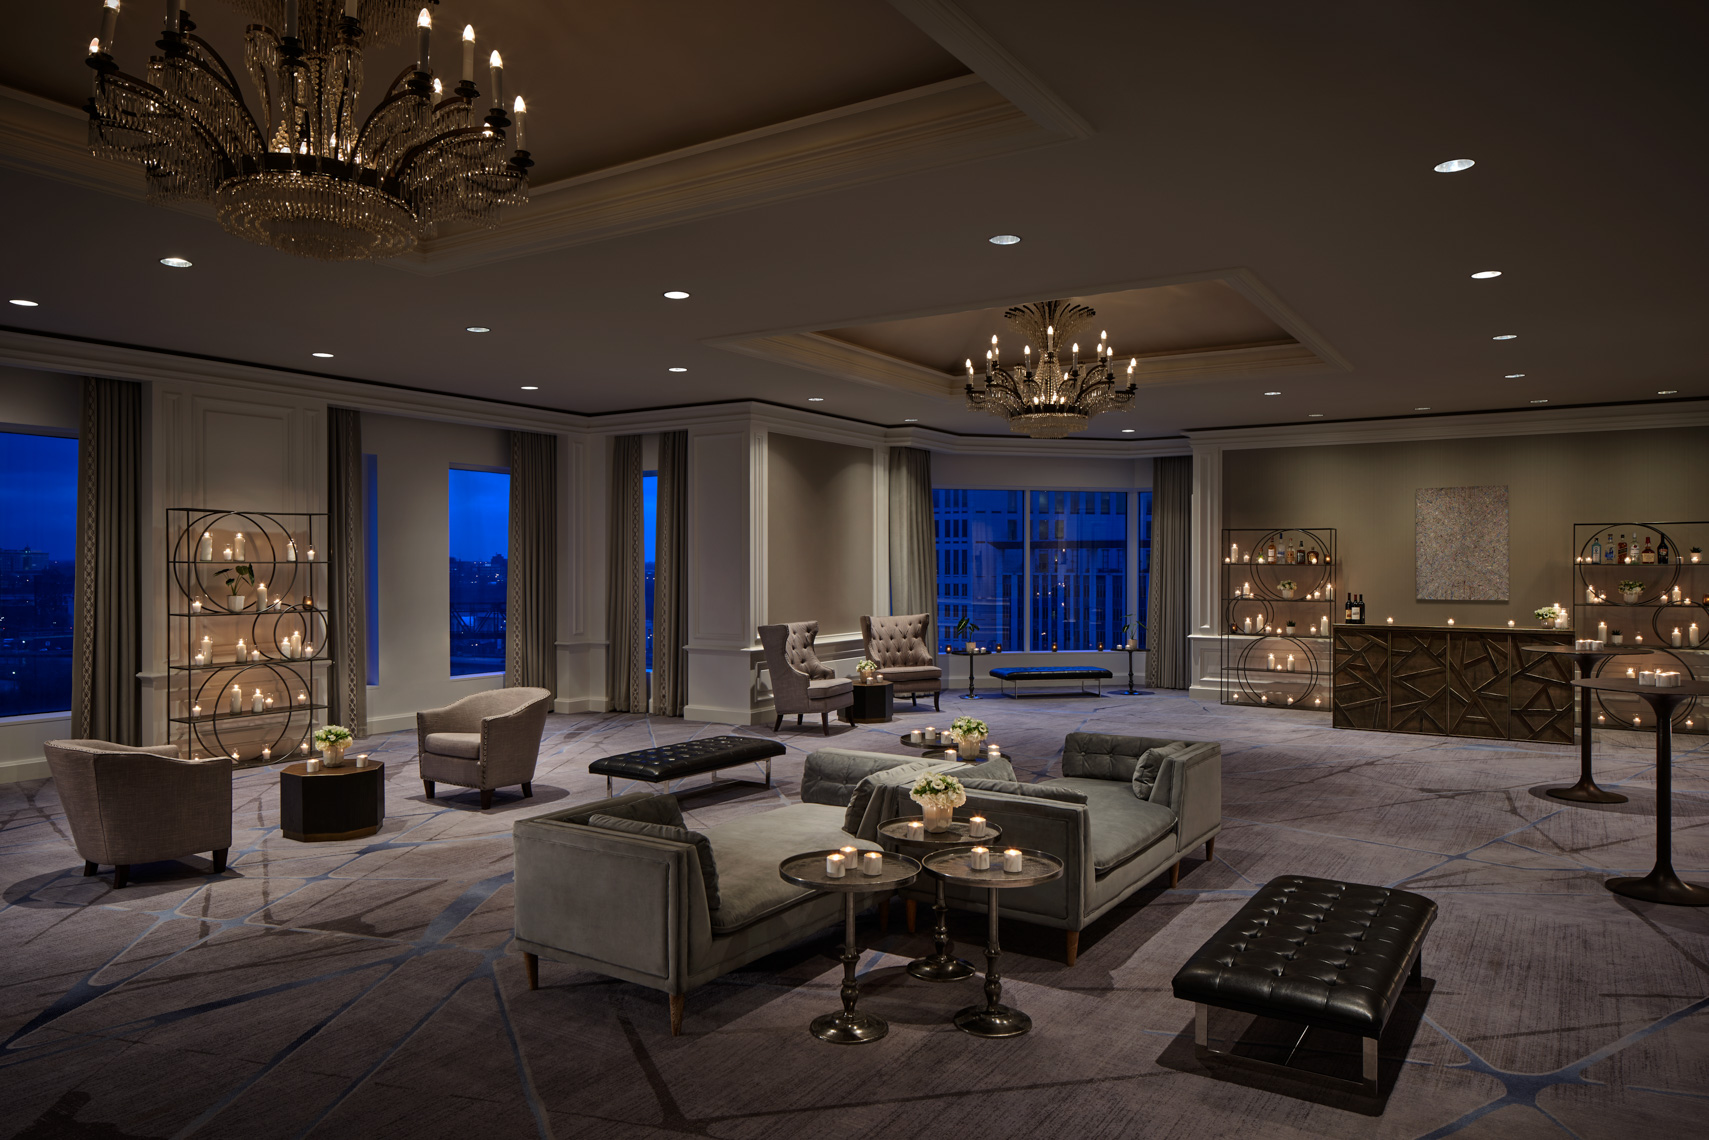 HOTELS-Spaces77-Ritz-Carlton-Cleveland7